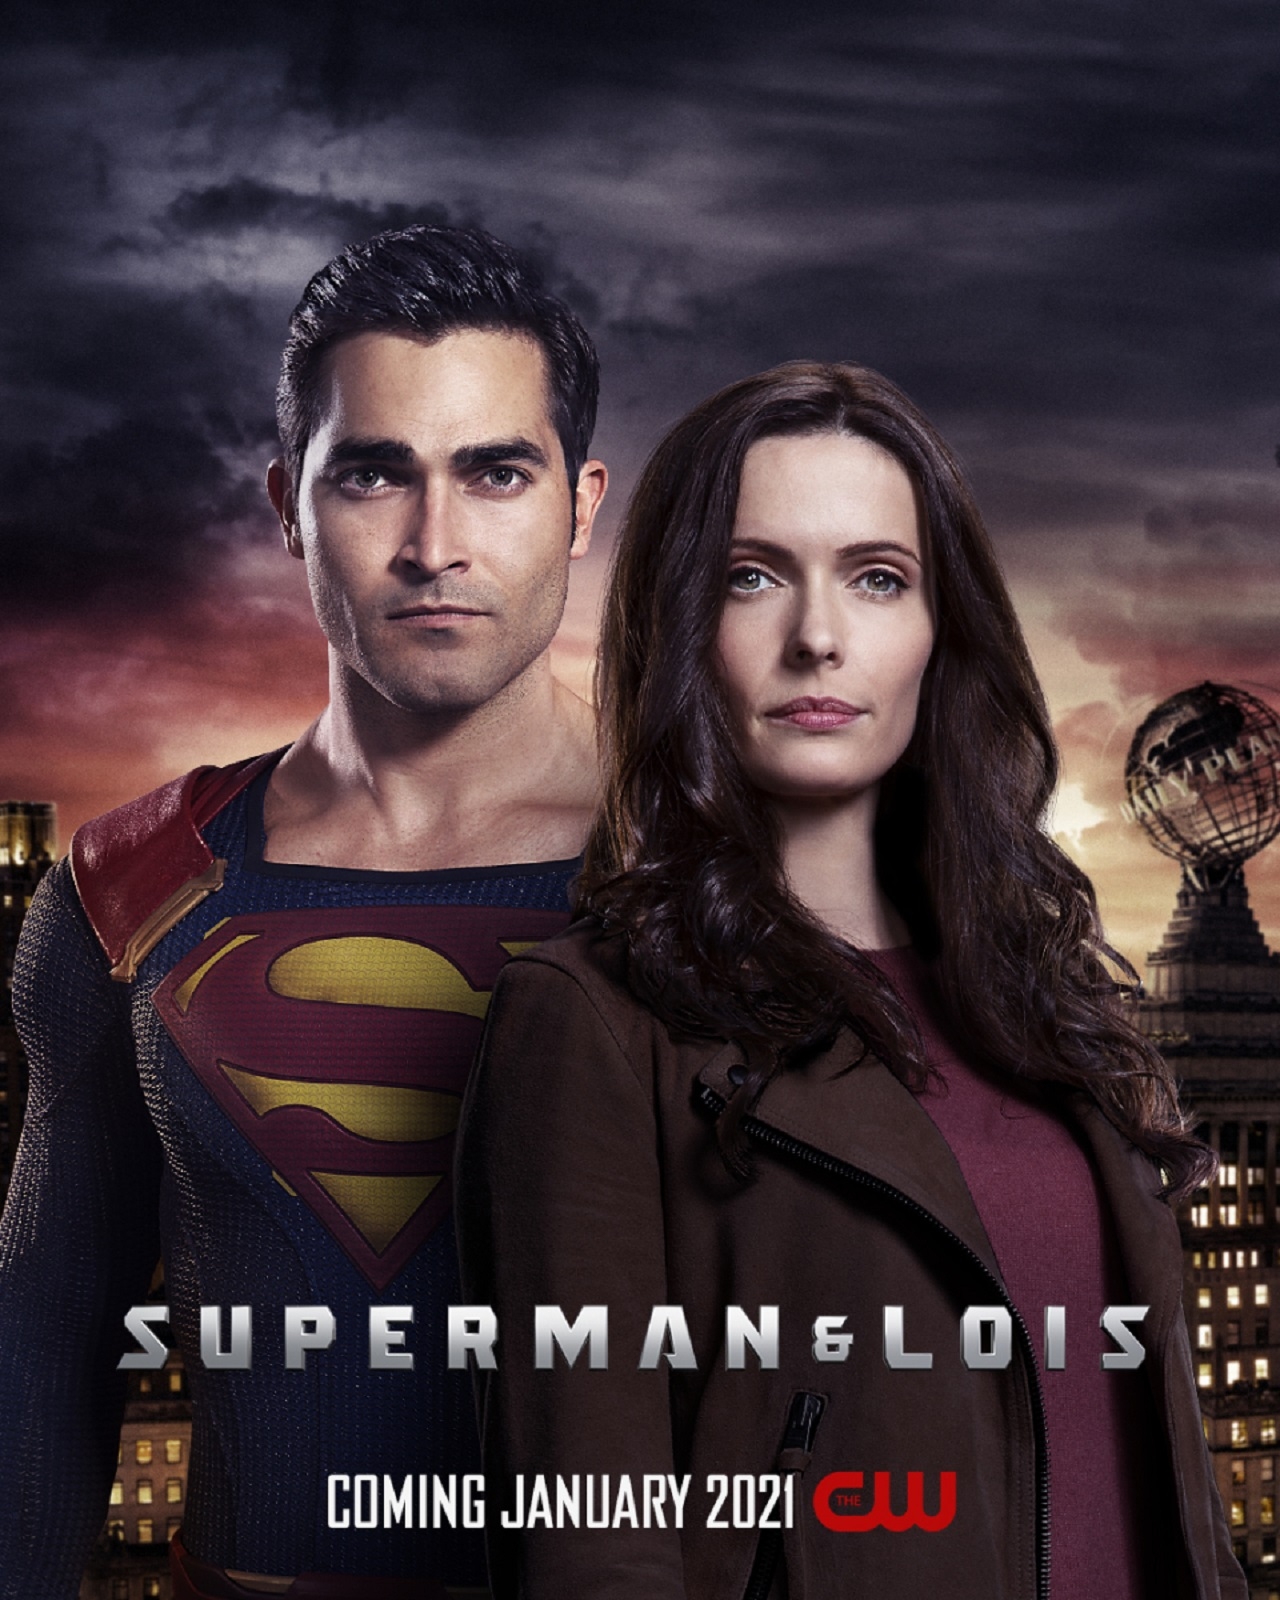 """Superman & Lois: Elizabeth Tulloch Shows Some Love for Her """"Superfam"""""""